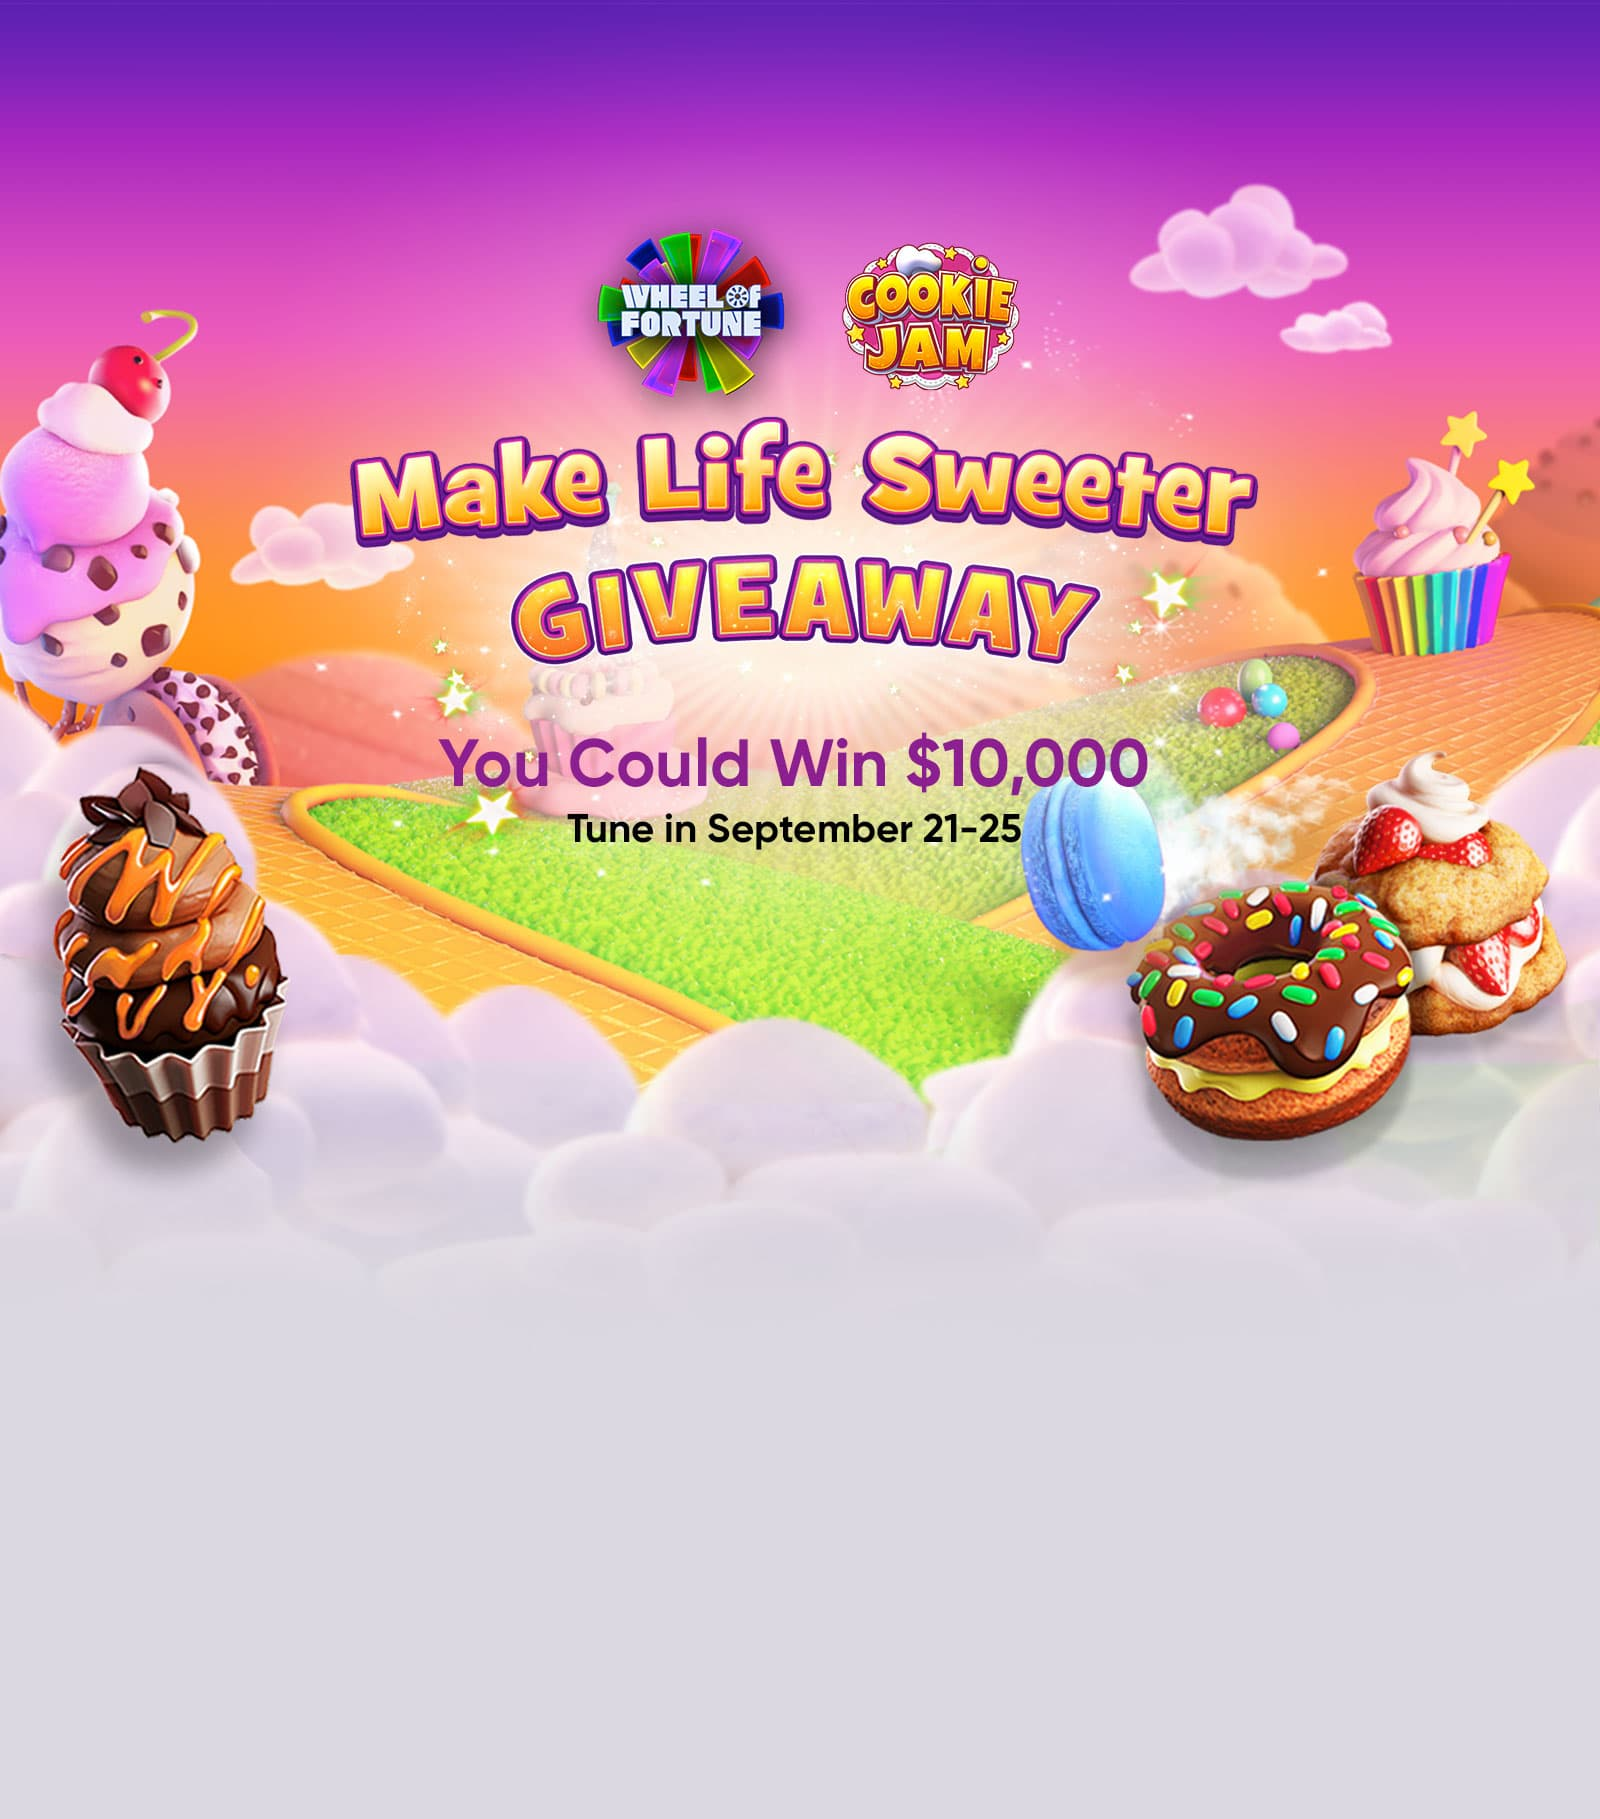 Wheel of Fortune Make Life Sweeter Giveaway 2020 - Winzily